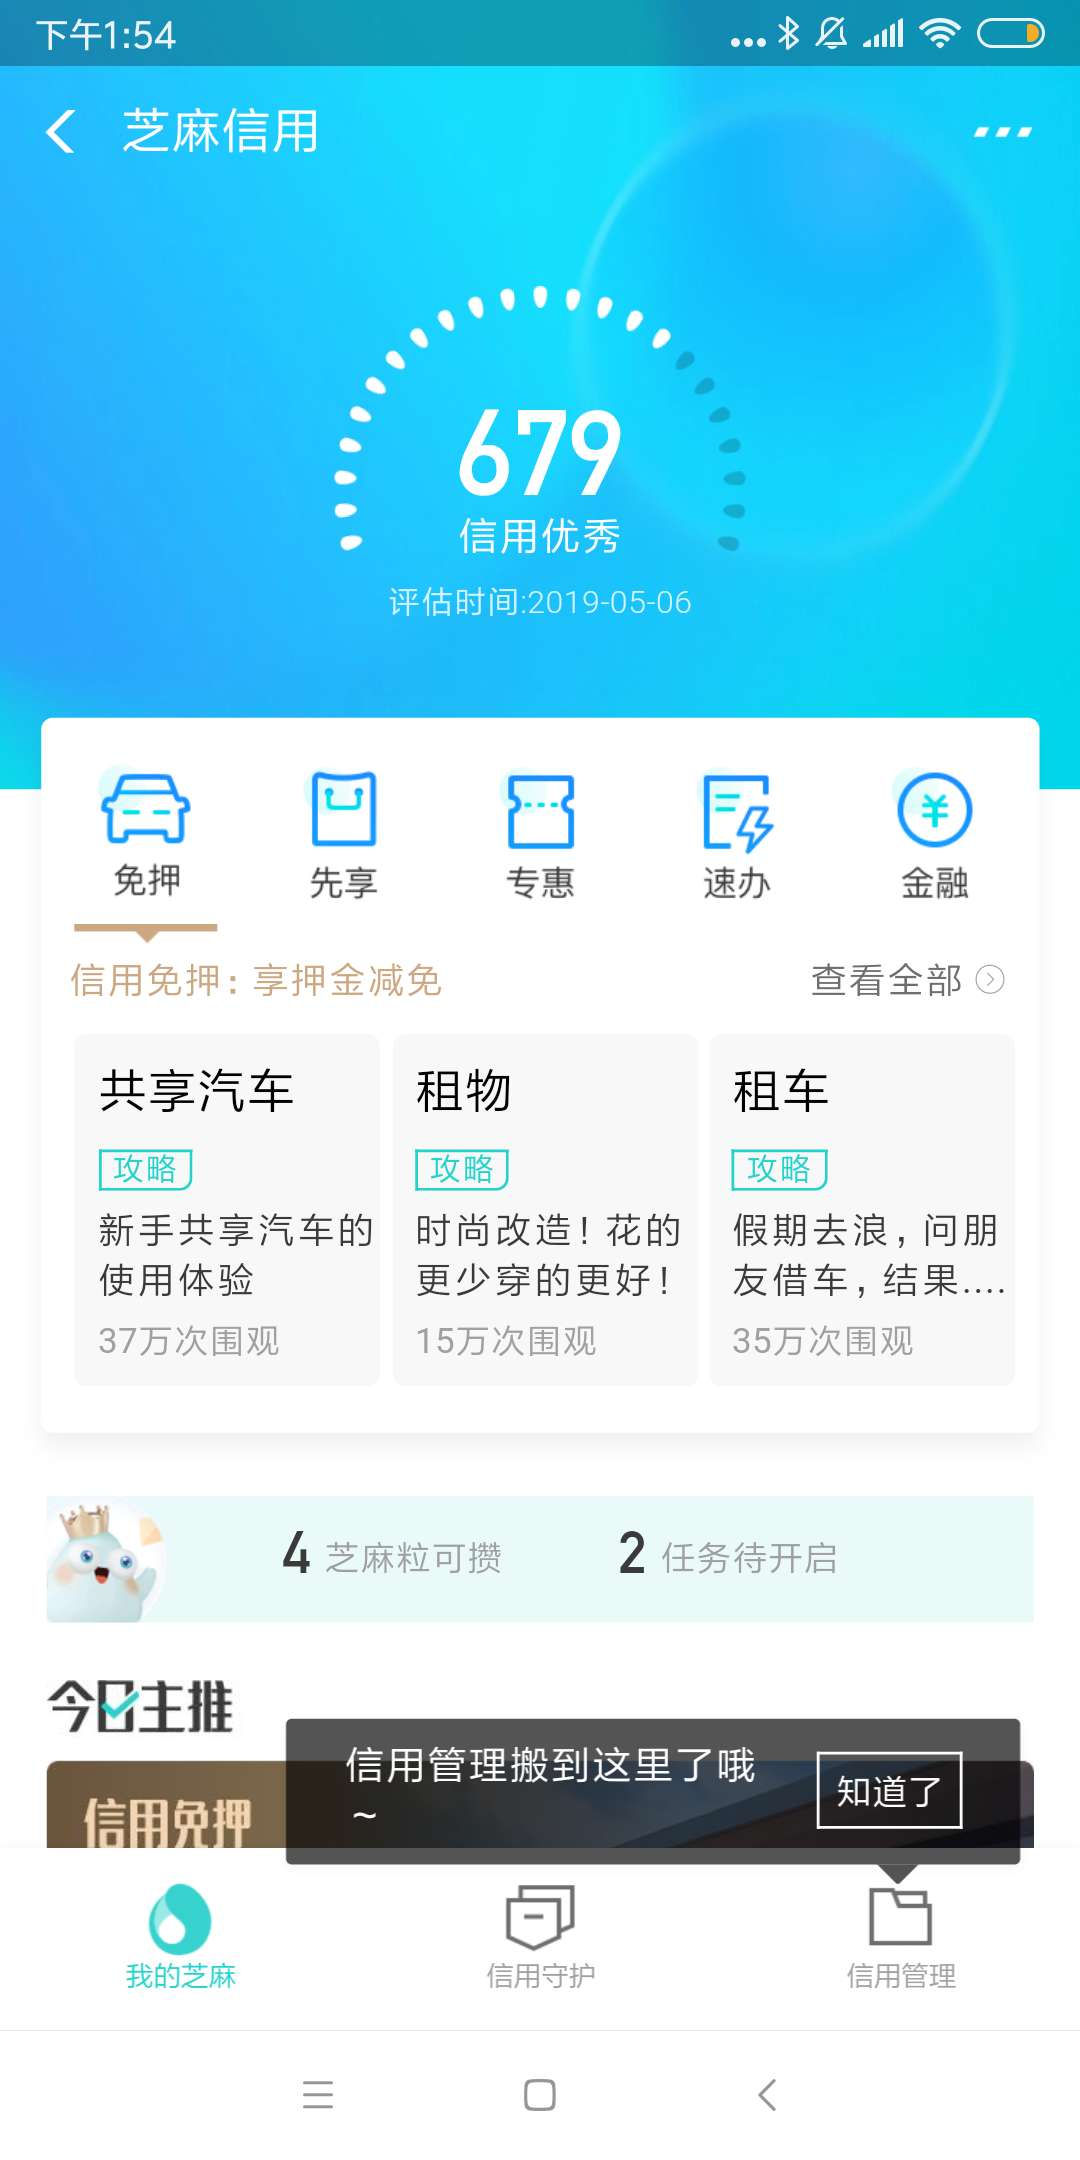 China Social Credit Systems: Sesame Credit Alibaba